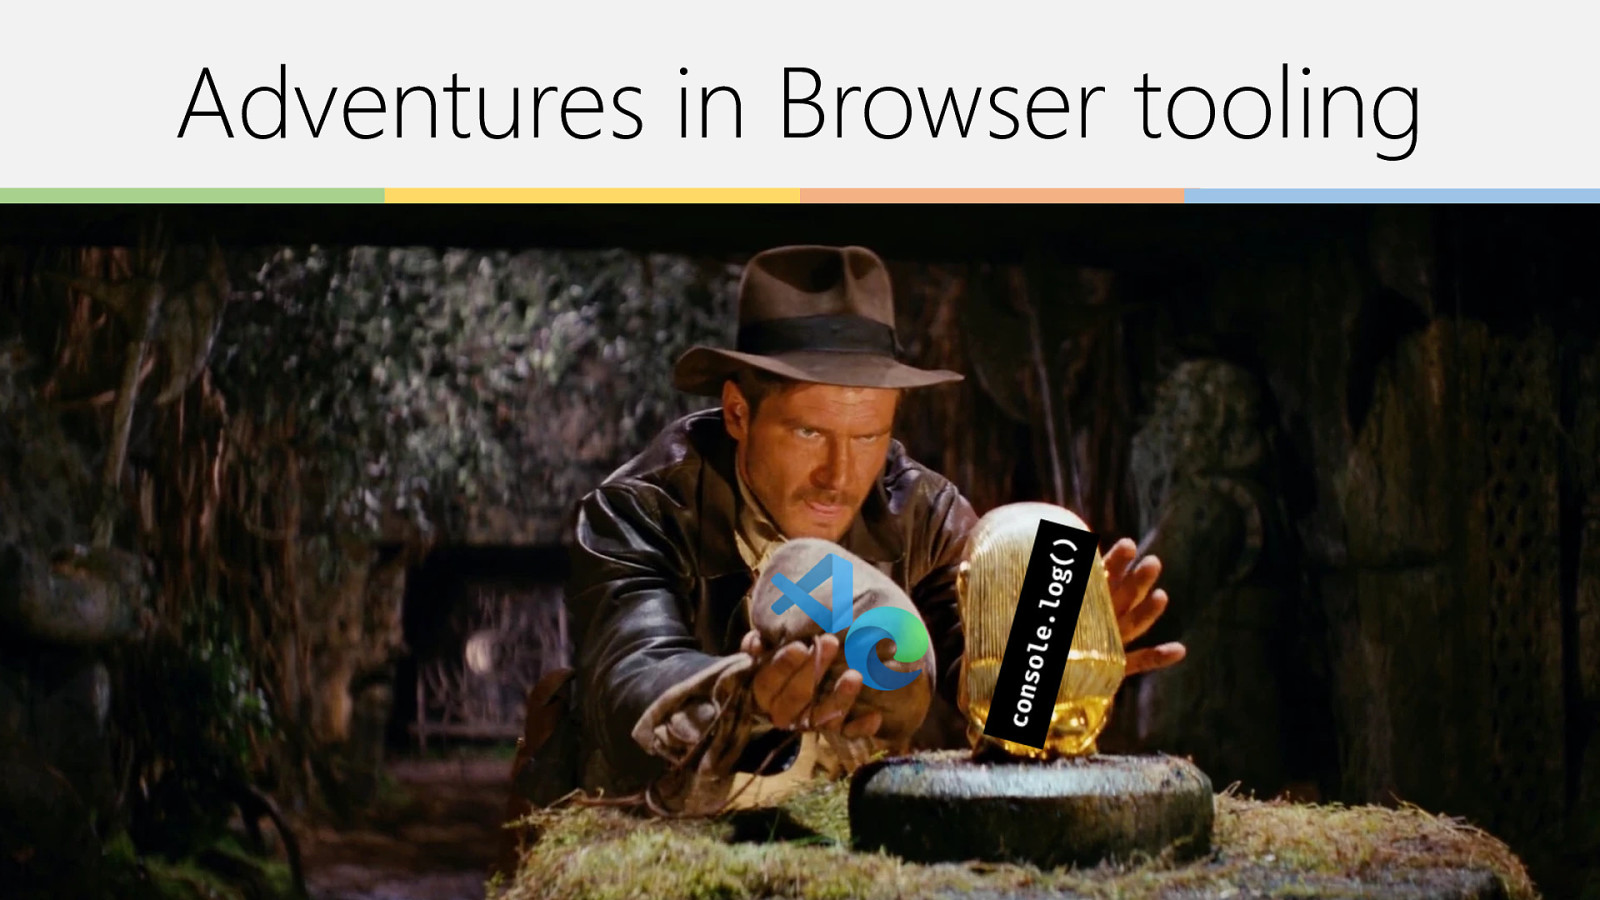 Adventures in Browser tooling